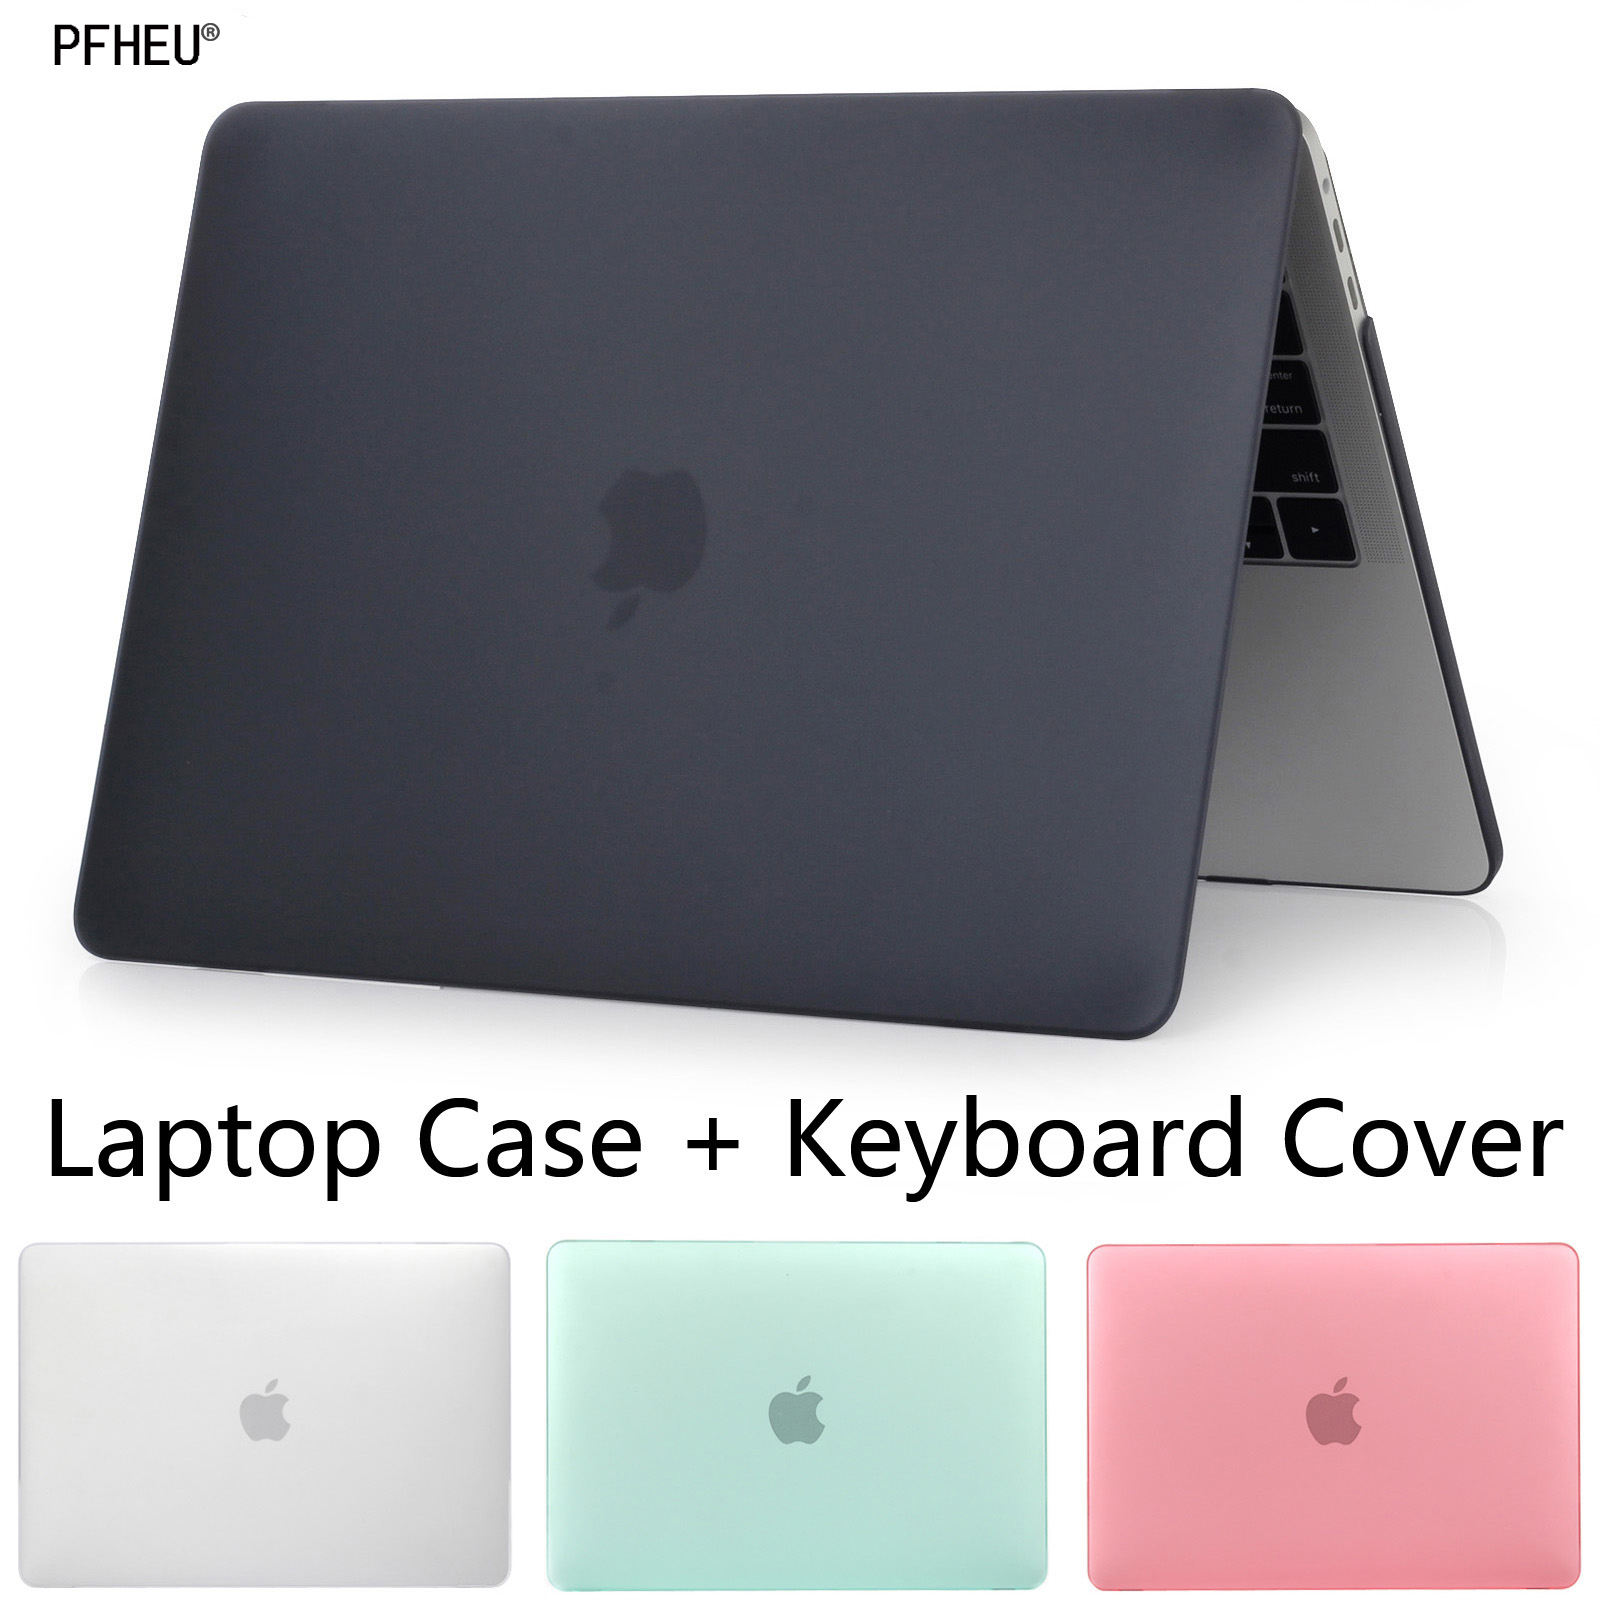 PFHEU HOT Sell laptop Case For Apple macbook Air Pro Retina 11 12 13 15 For Mac book 13.3 inch with Touch Bar +Keyboard Cover elite99 3d magnetic cat eye gel polish soak off nail art